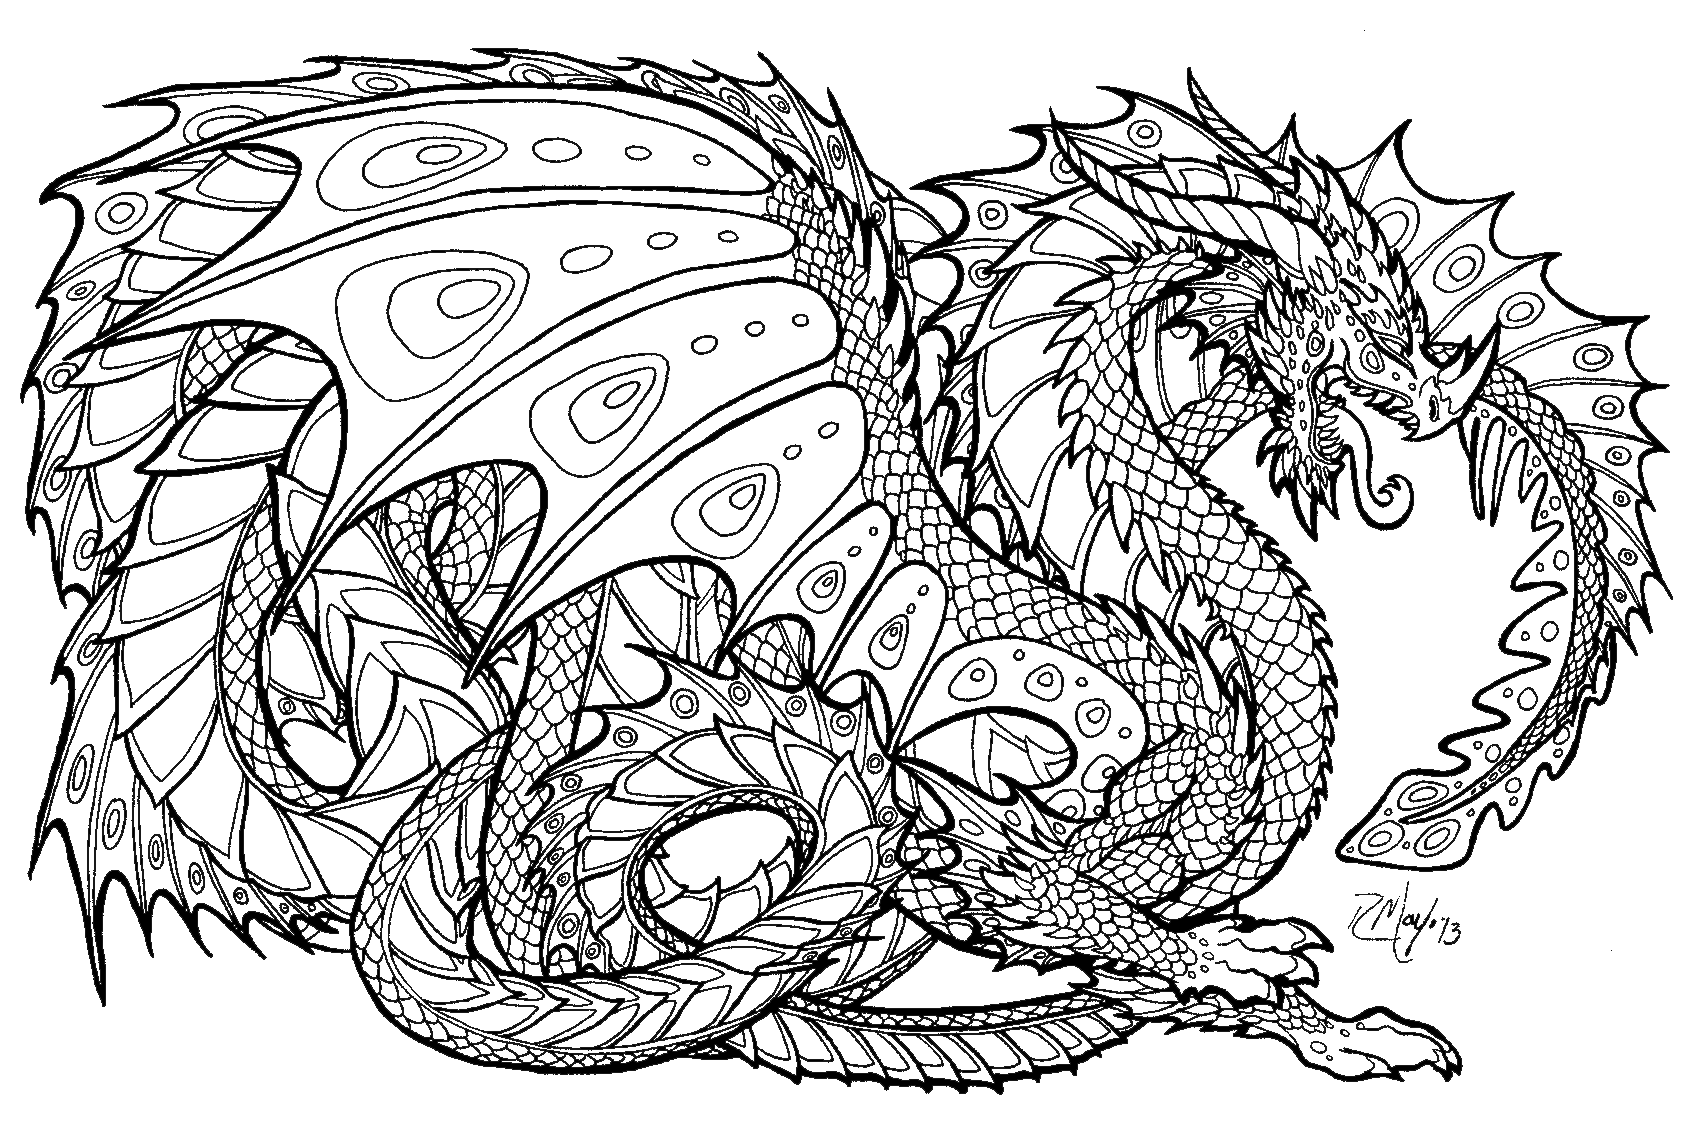 Very Detailed Dragon Coloring Pages Detailed Coloring Pages People Coloring Pages Dragon Coloring Page